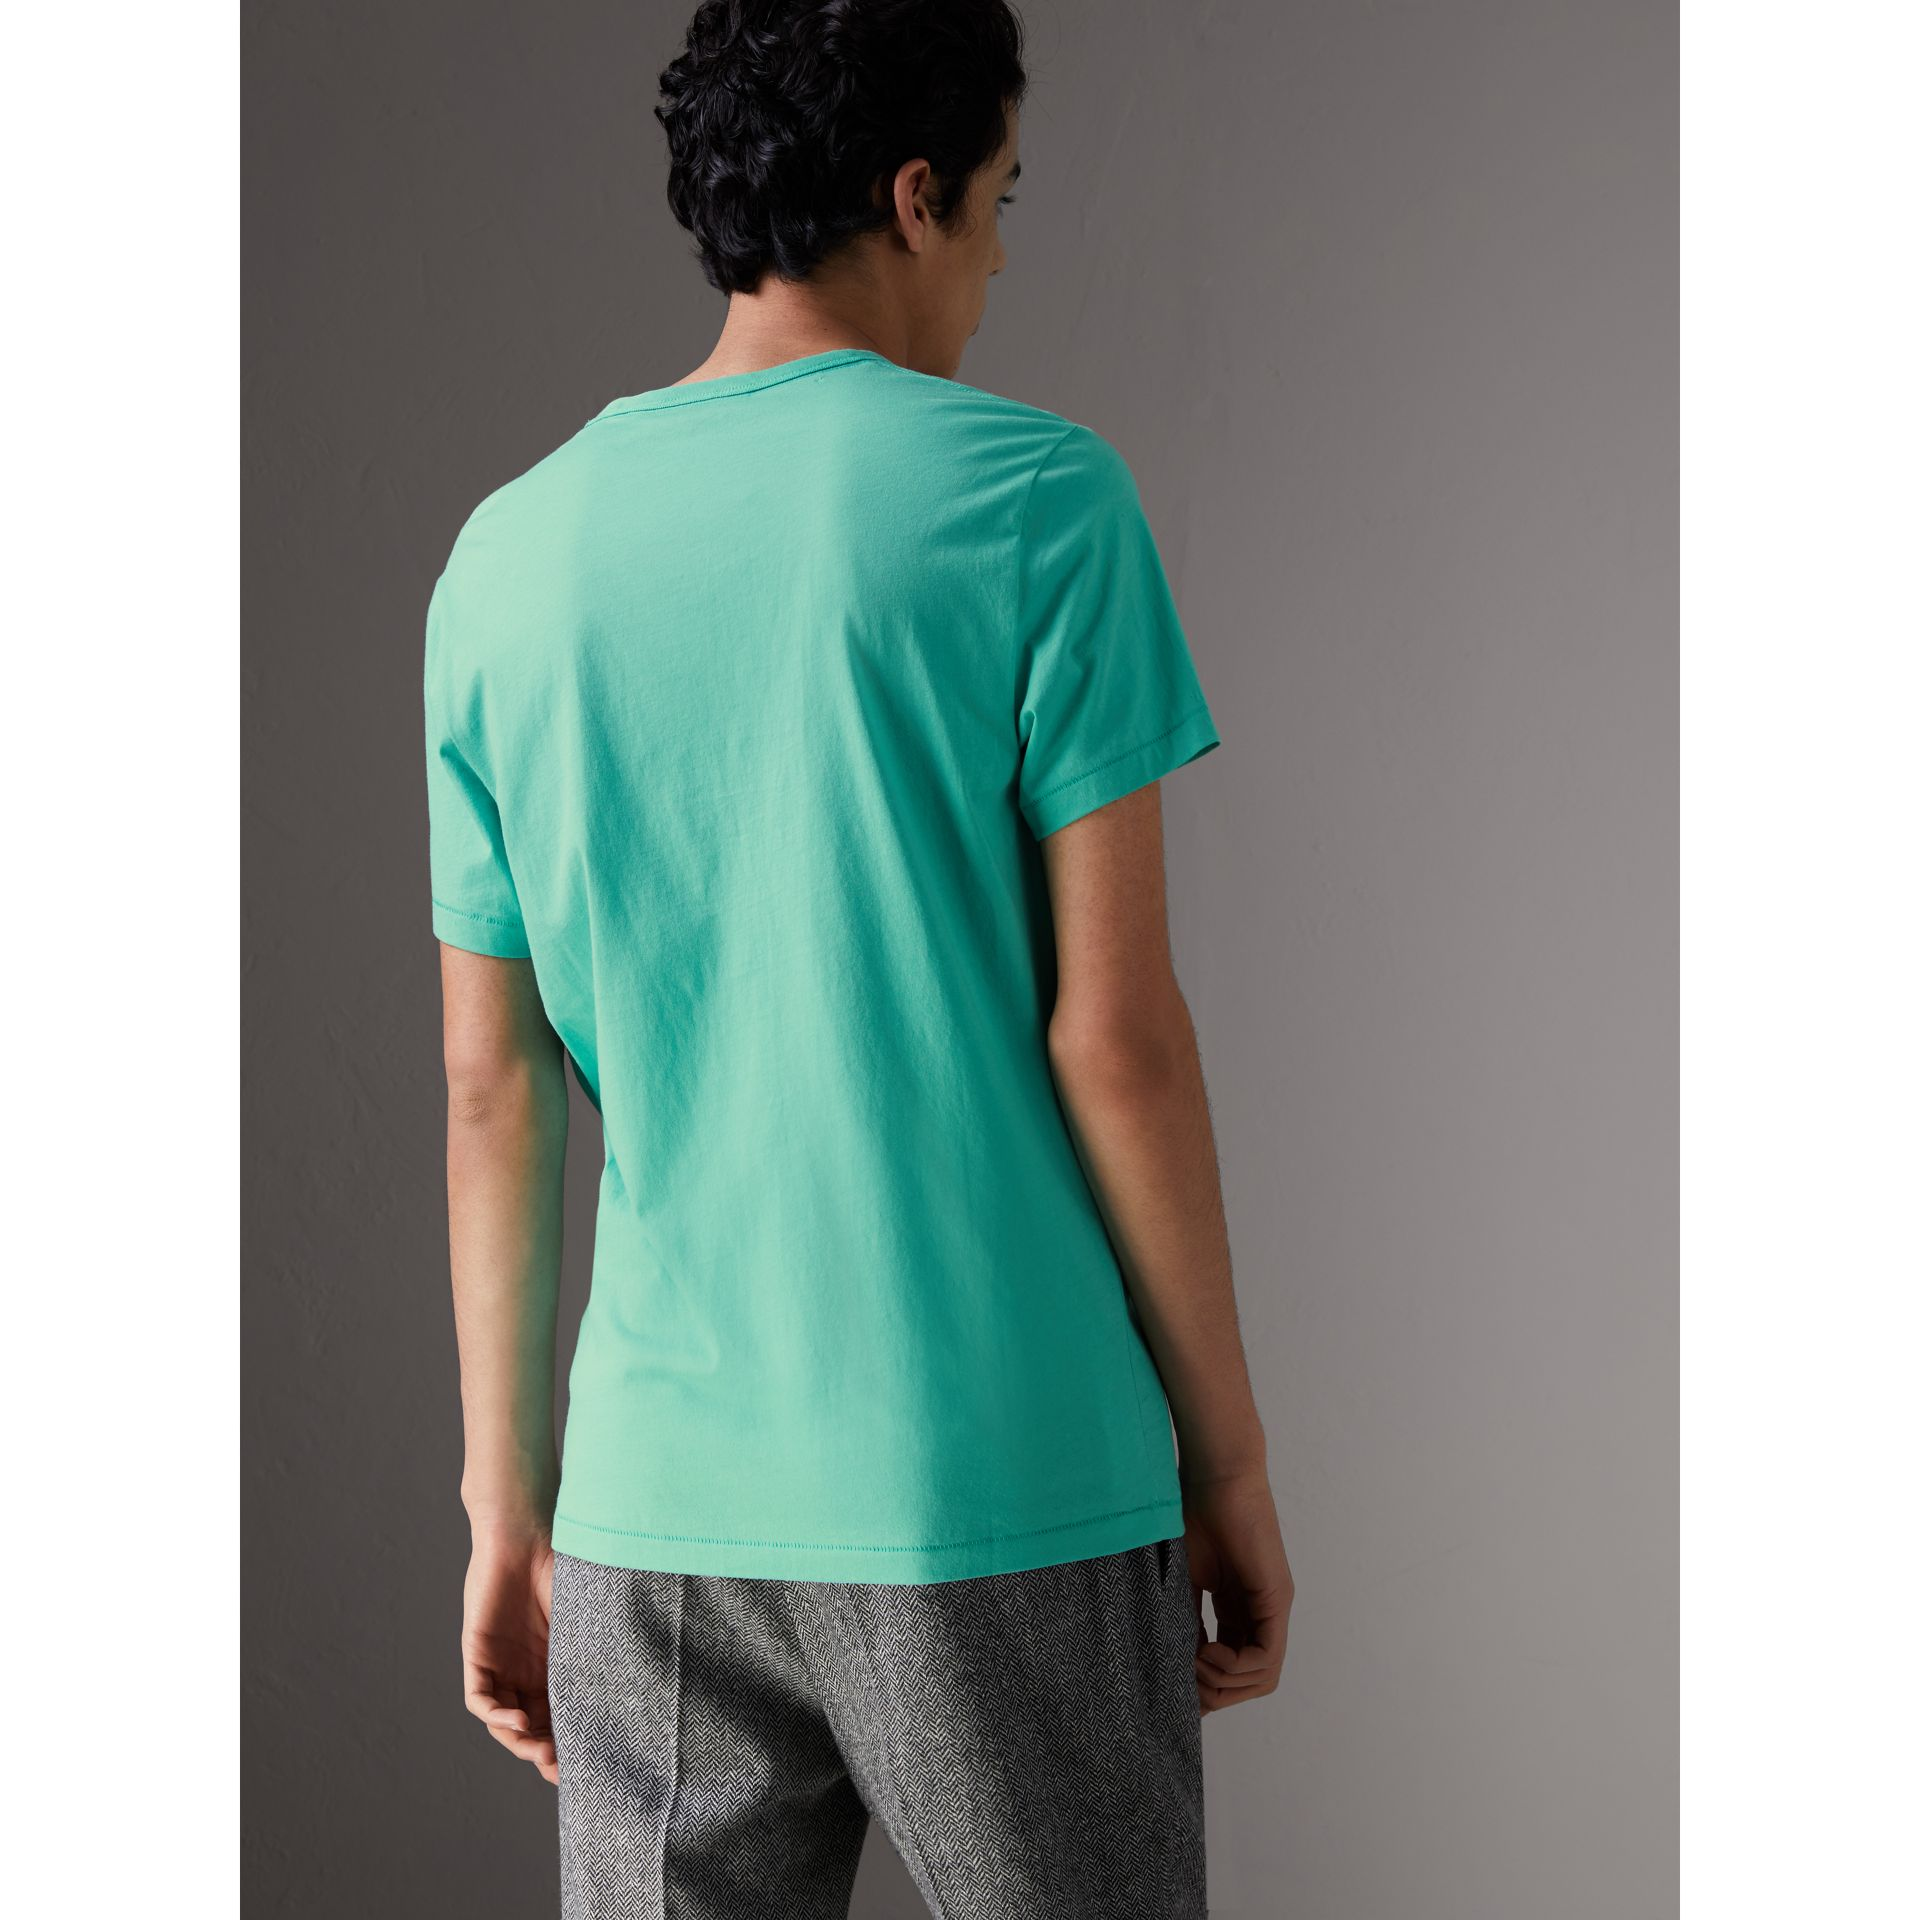 Cotton Jersey T-shirt in Turquoise - Men | Burberry United States - gallery image 2